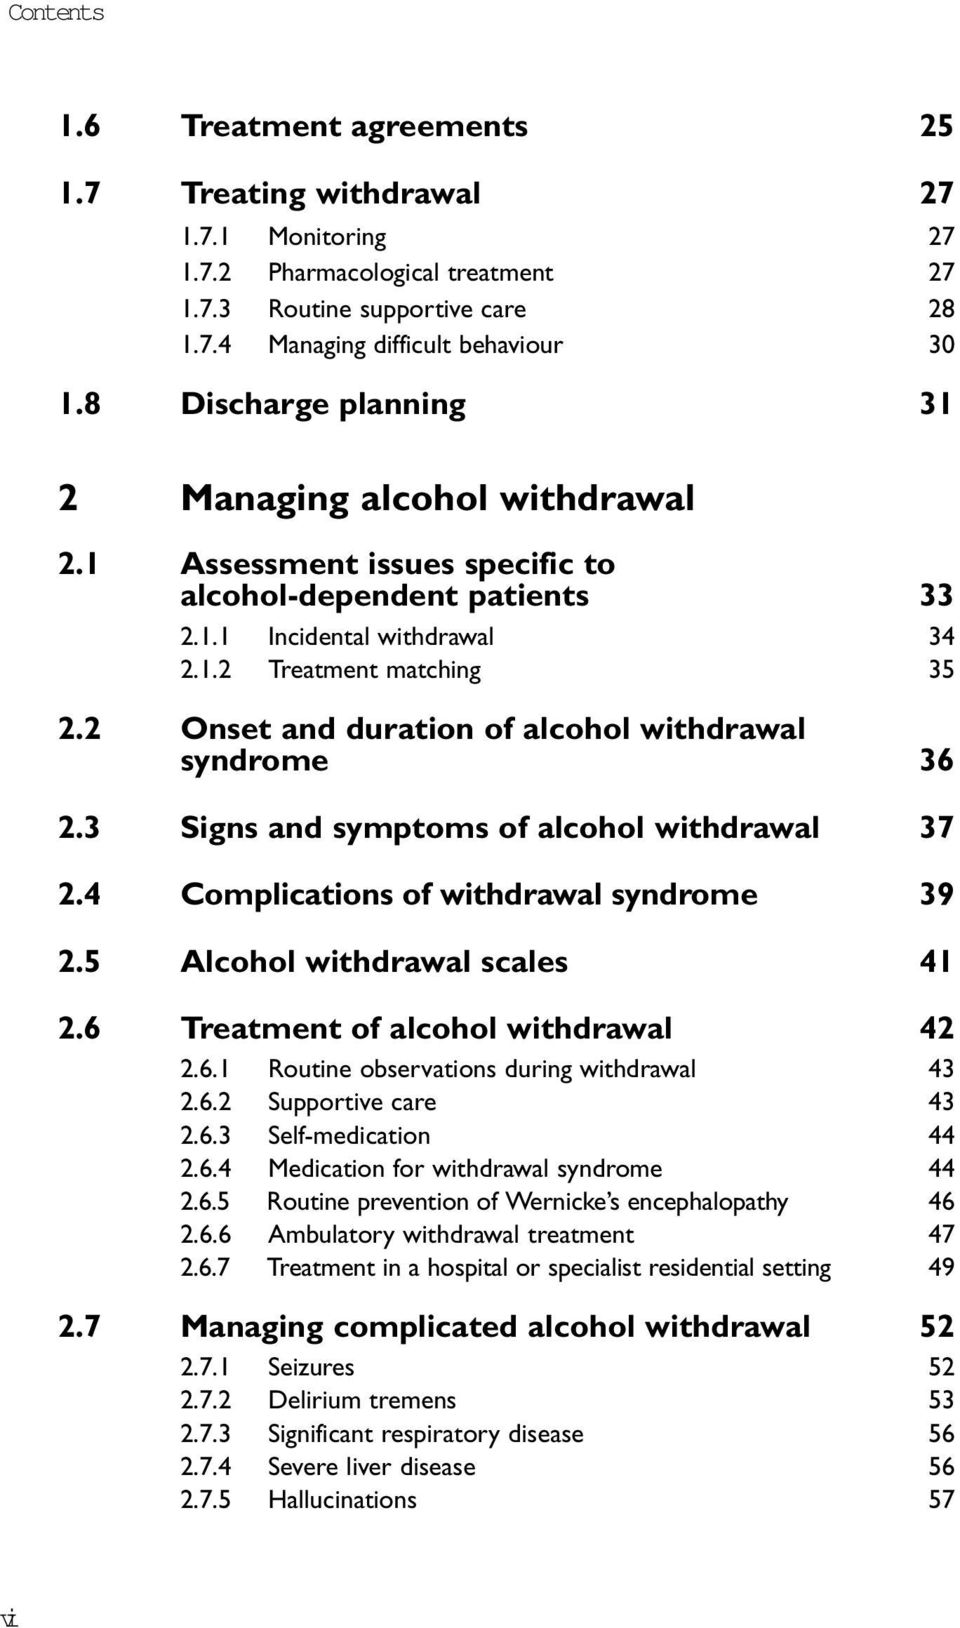 2 Onset and duration of alcohol withdrawal syndrome 36 2.3 Signs and symptoms of alcohol withdrawal 37 2.4 Complications of withdrawal syndrome 39 2.5 Alcohol withdrawal scales 41 2.